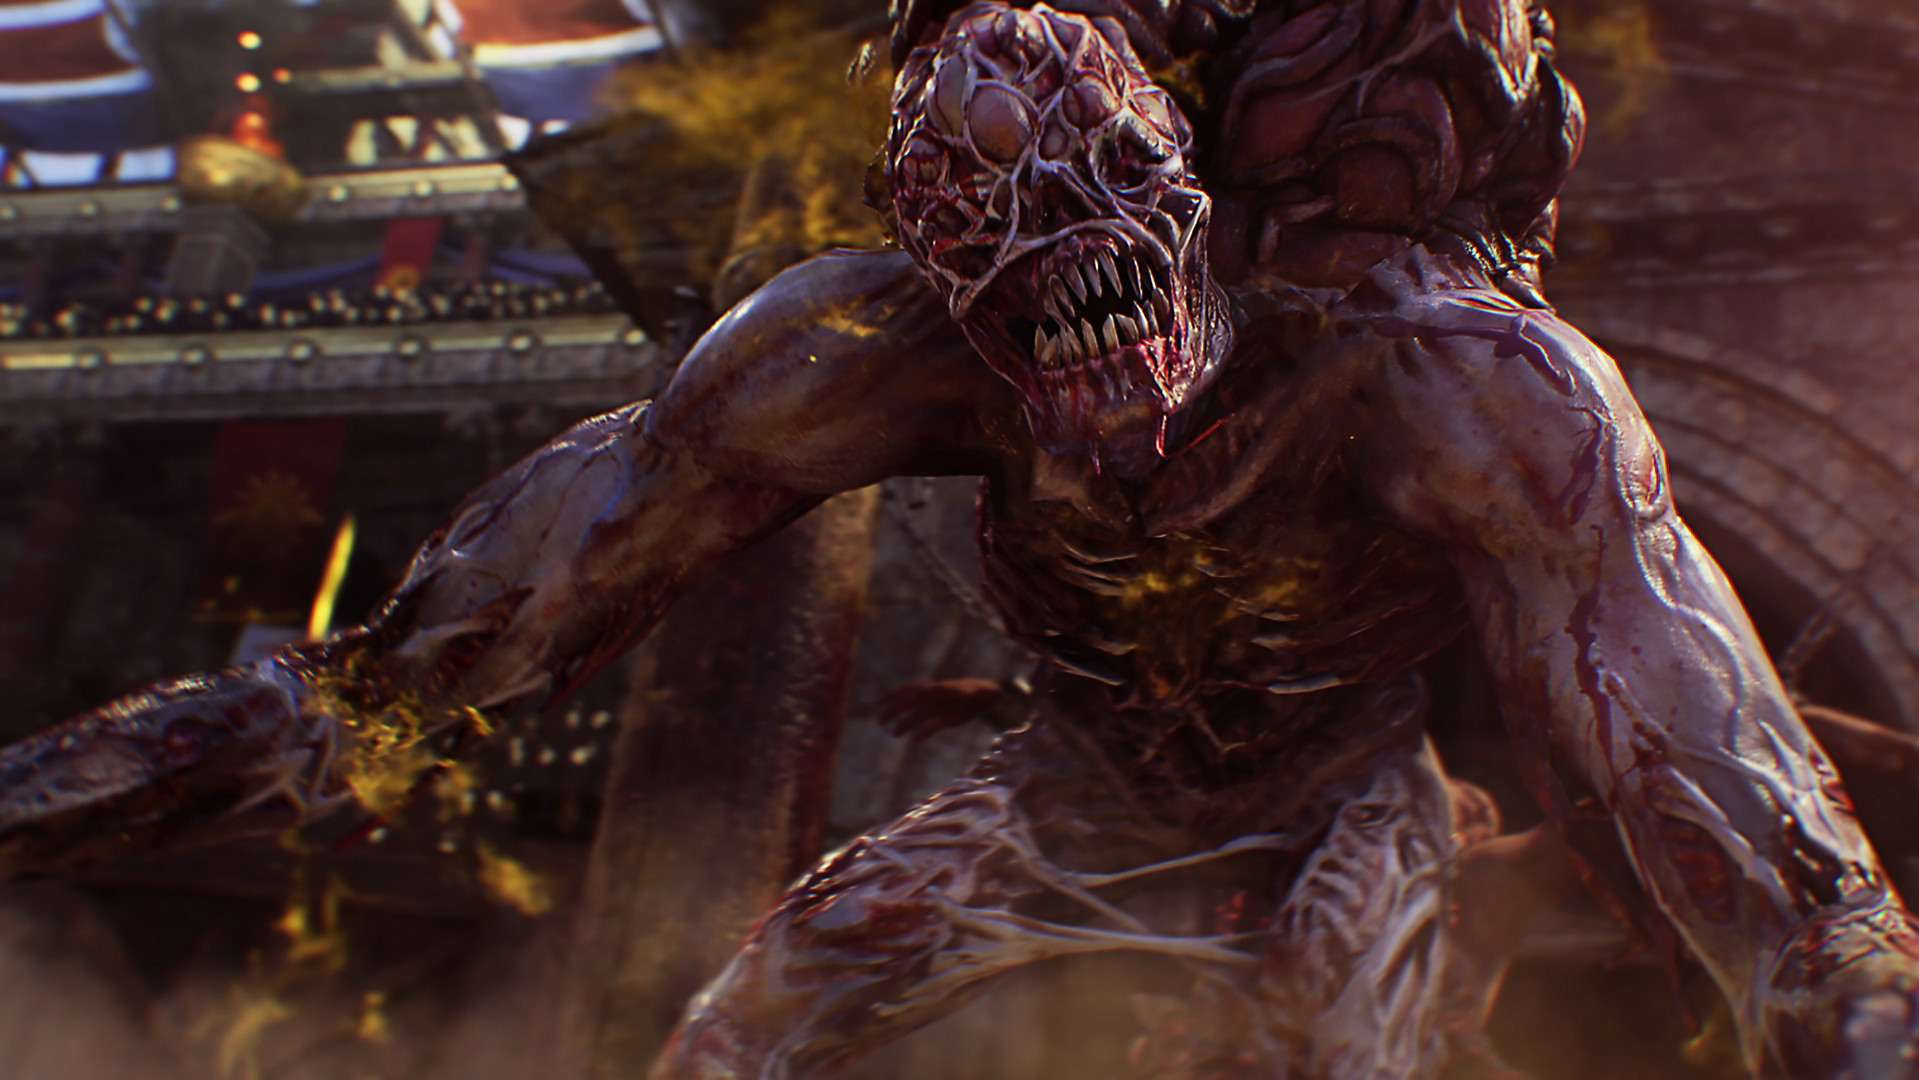 call-of-duty-black-ops-4-zombies-screen-